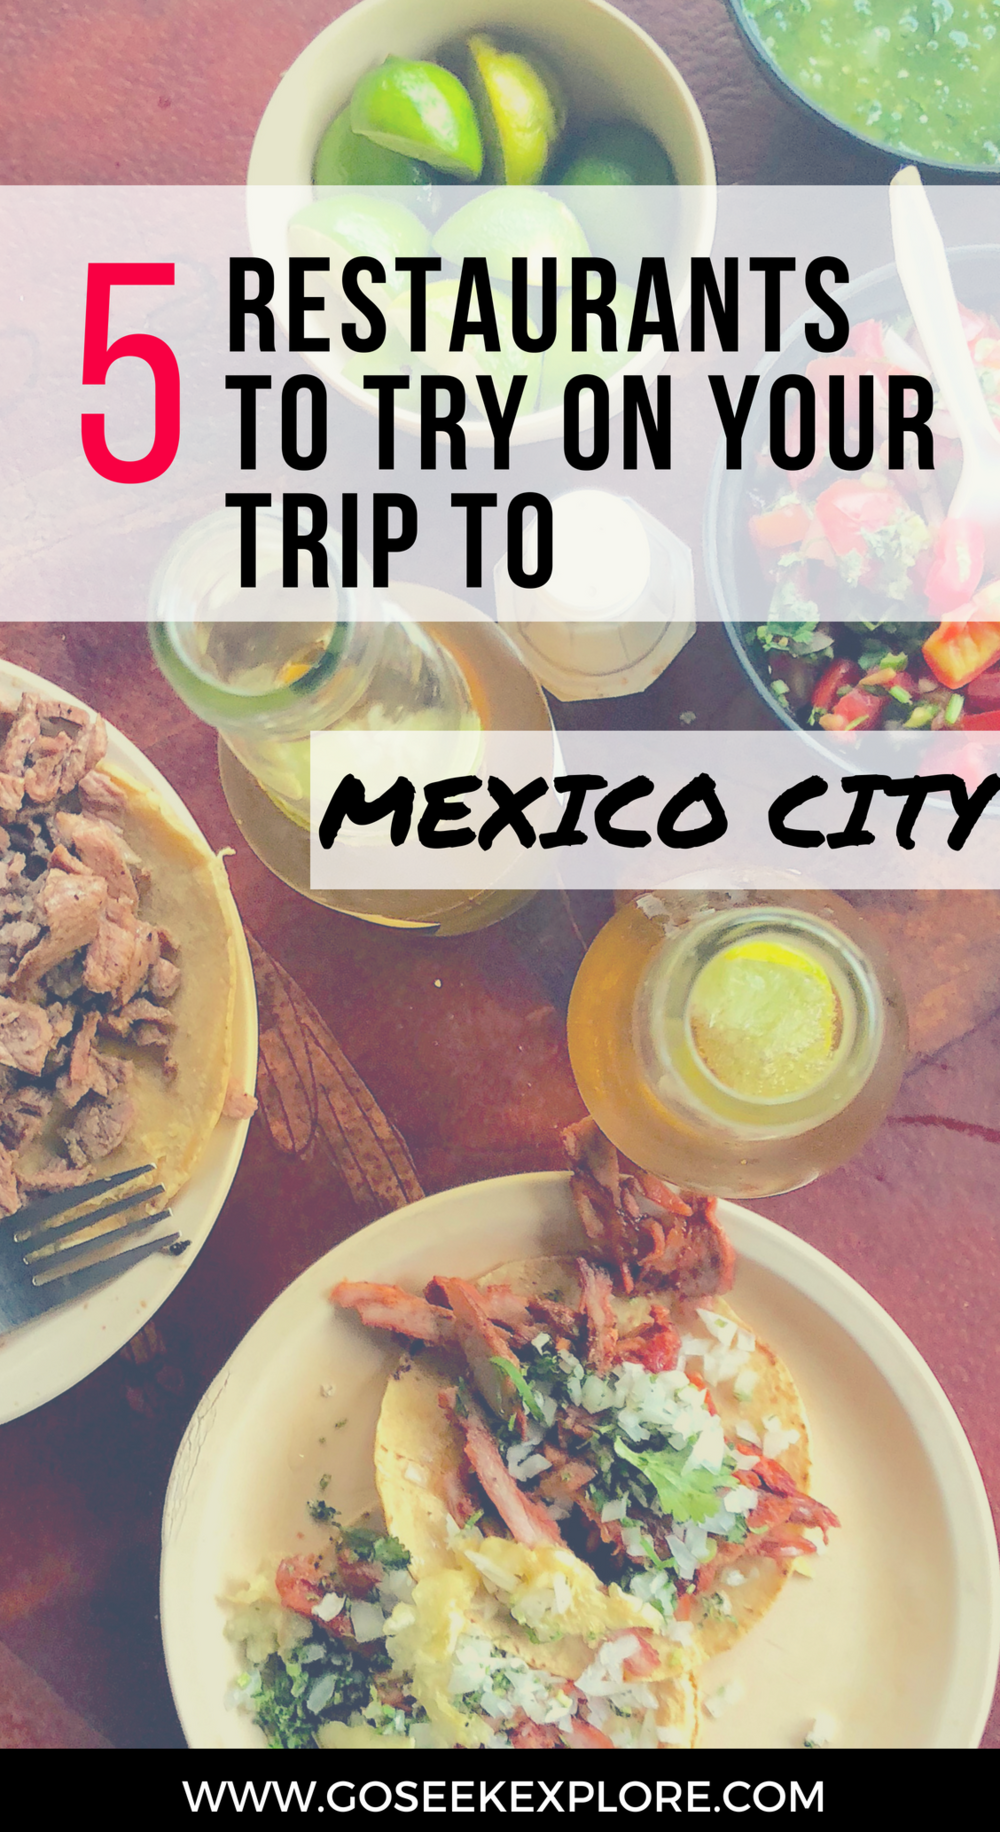 5 Great Restaurants To Try on Your Trip to Mexico City / Go Seek Explore / goseekexplore.com / Ally Archer / 5-restaurants-mexico-city